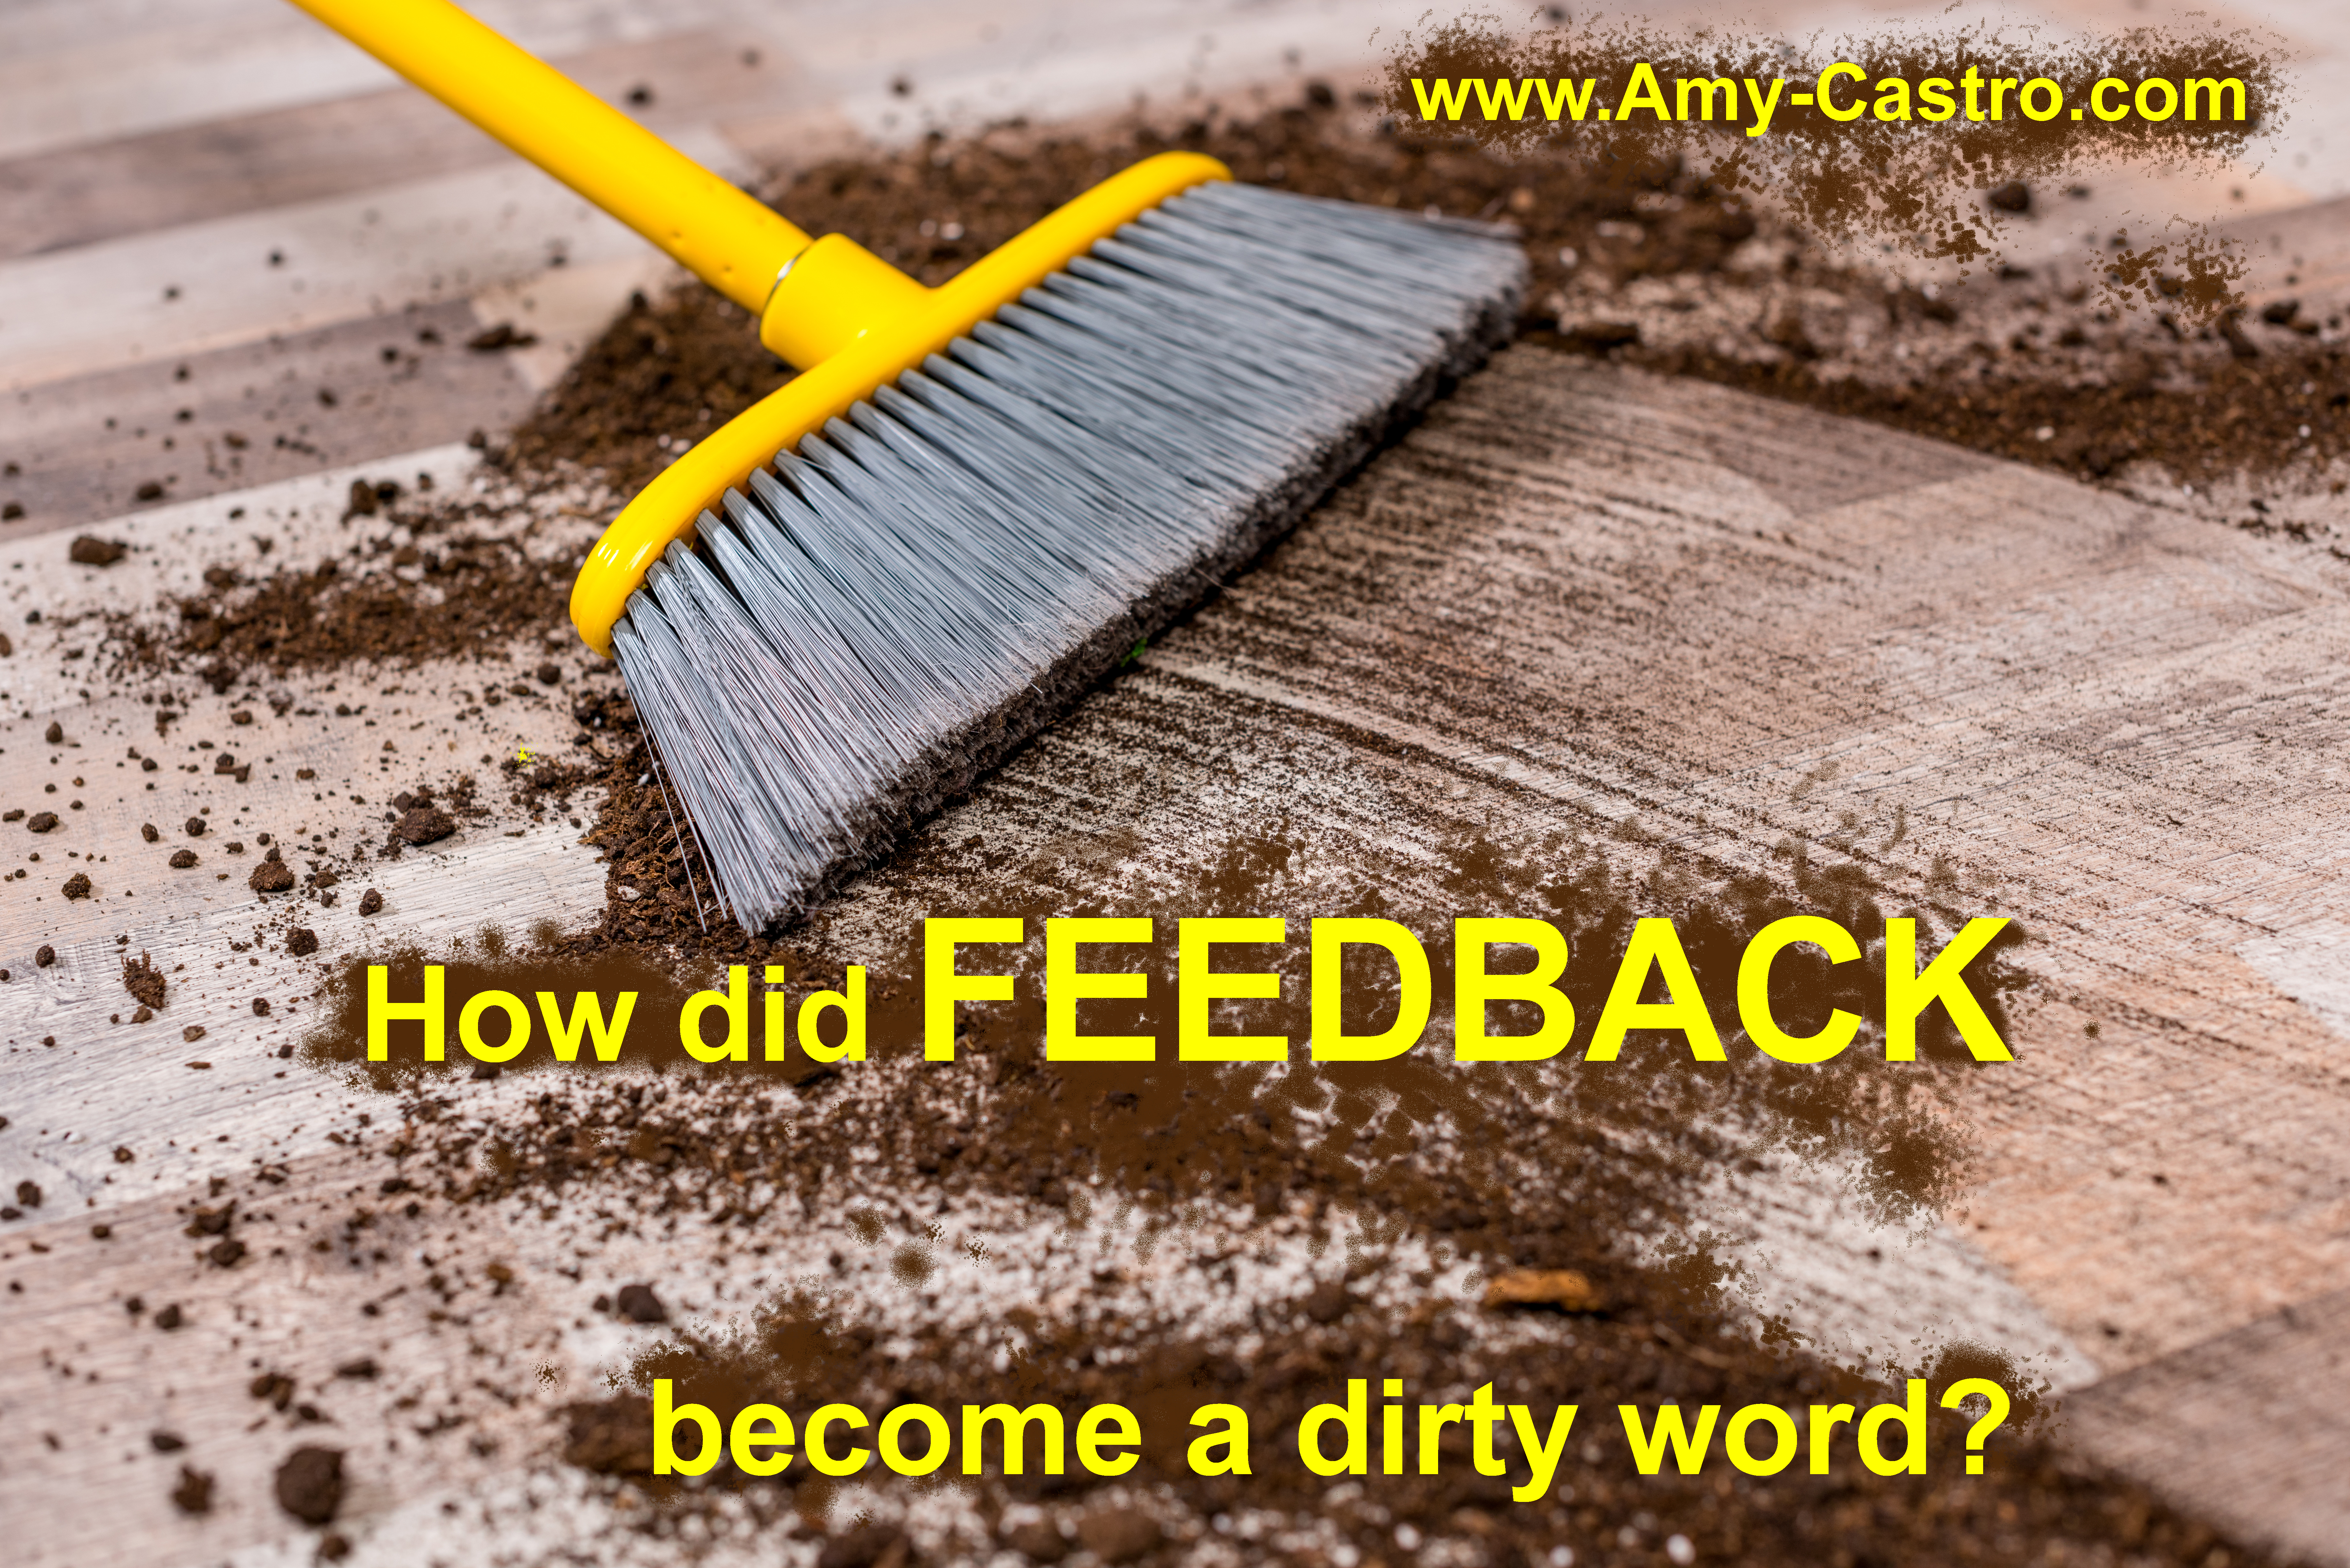 Thanks, but no thanks: The dirty truth about feedback